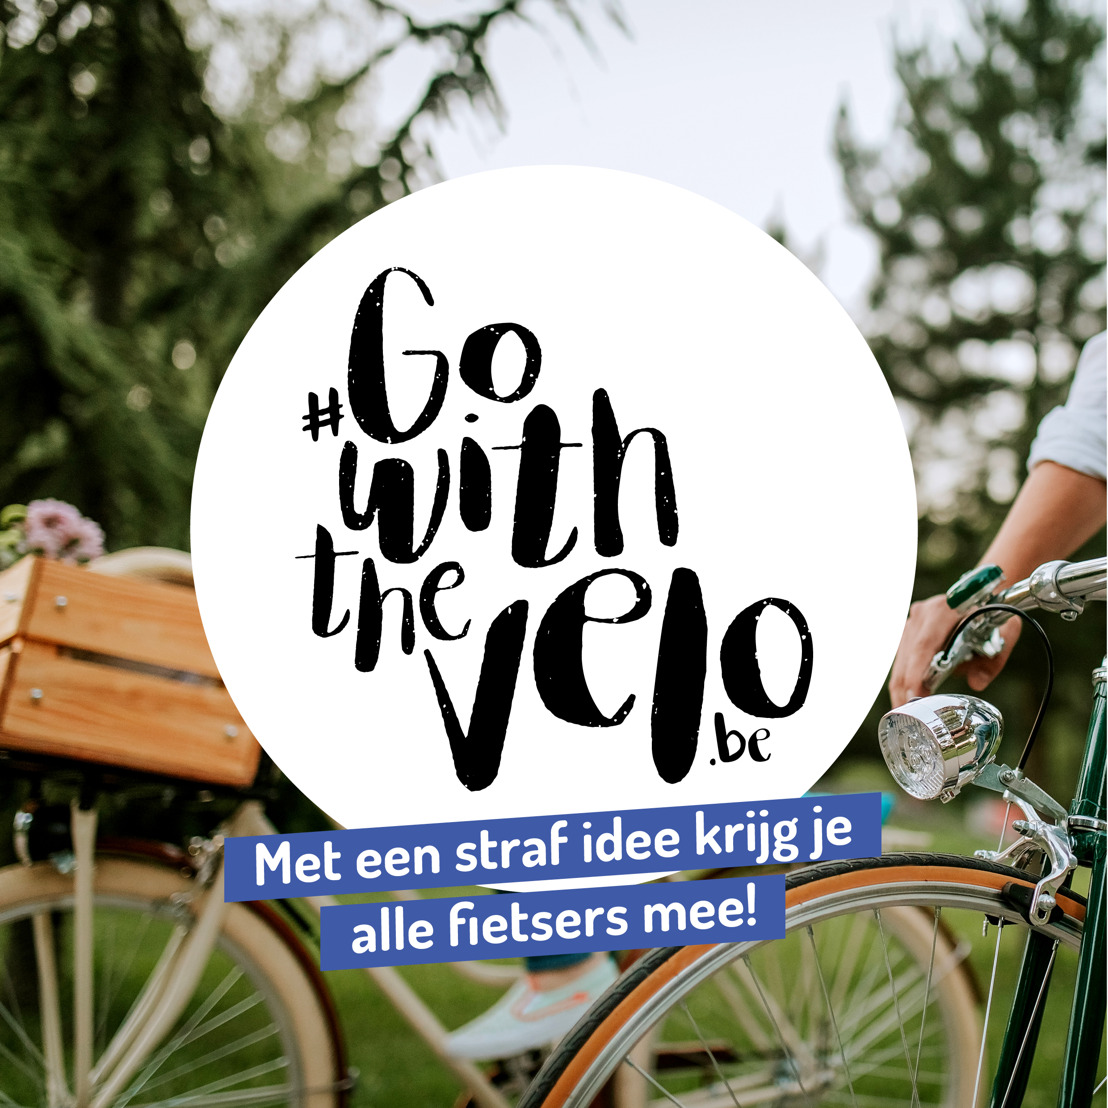 Go With The Velo zet collega's op de fiets!